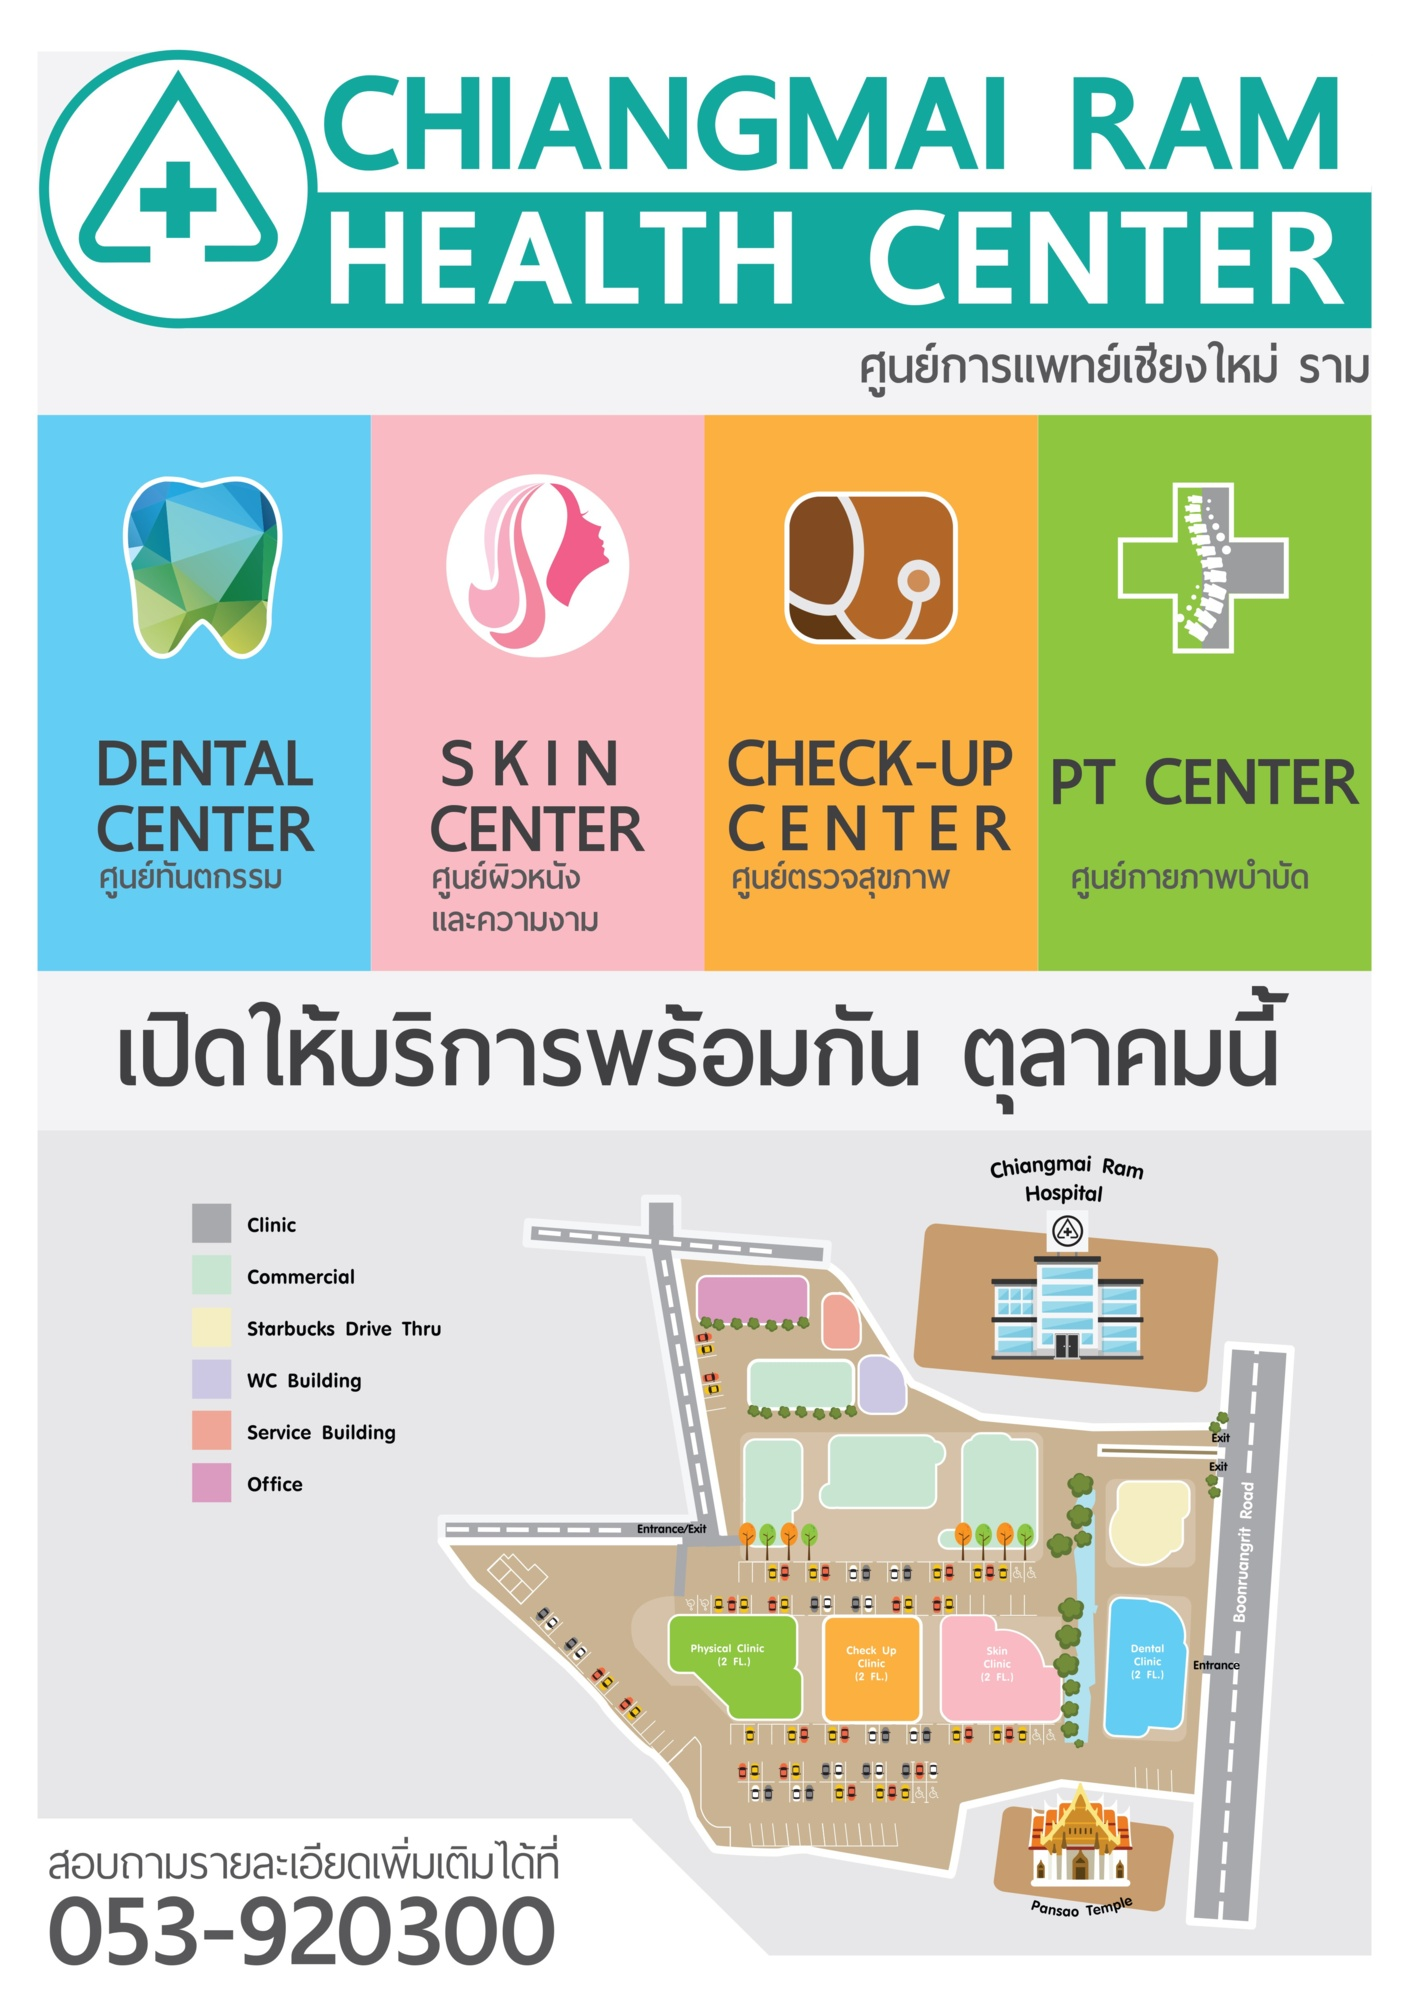 Work Permit Medical Certificate Chiang Mai Ambassador Map Location